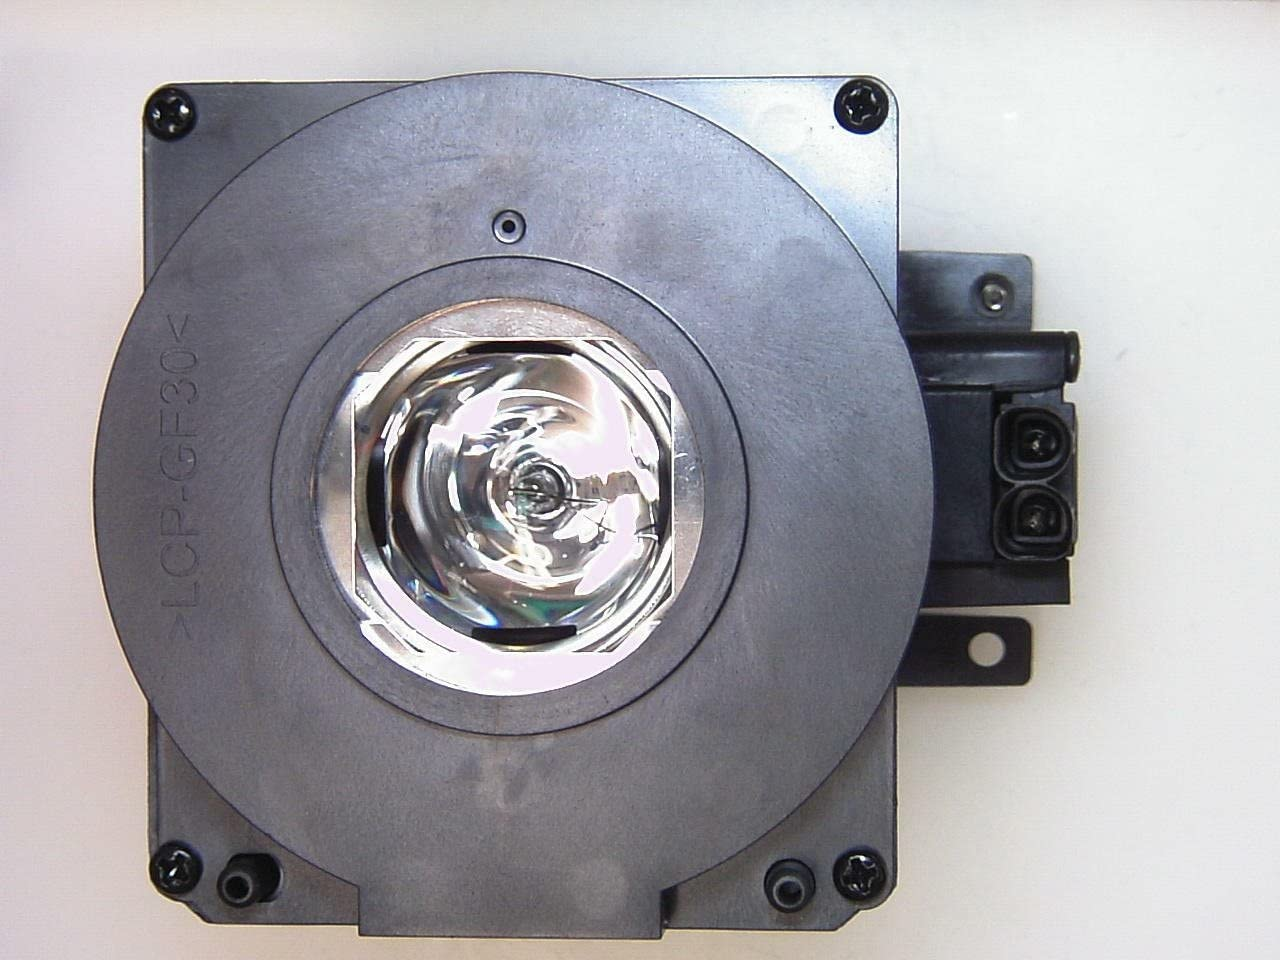 Diamond Lamp for NEC PA500U Projector with a Ushio bulb inside housing